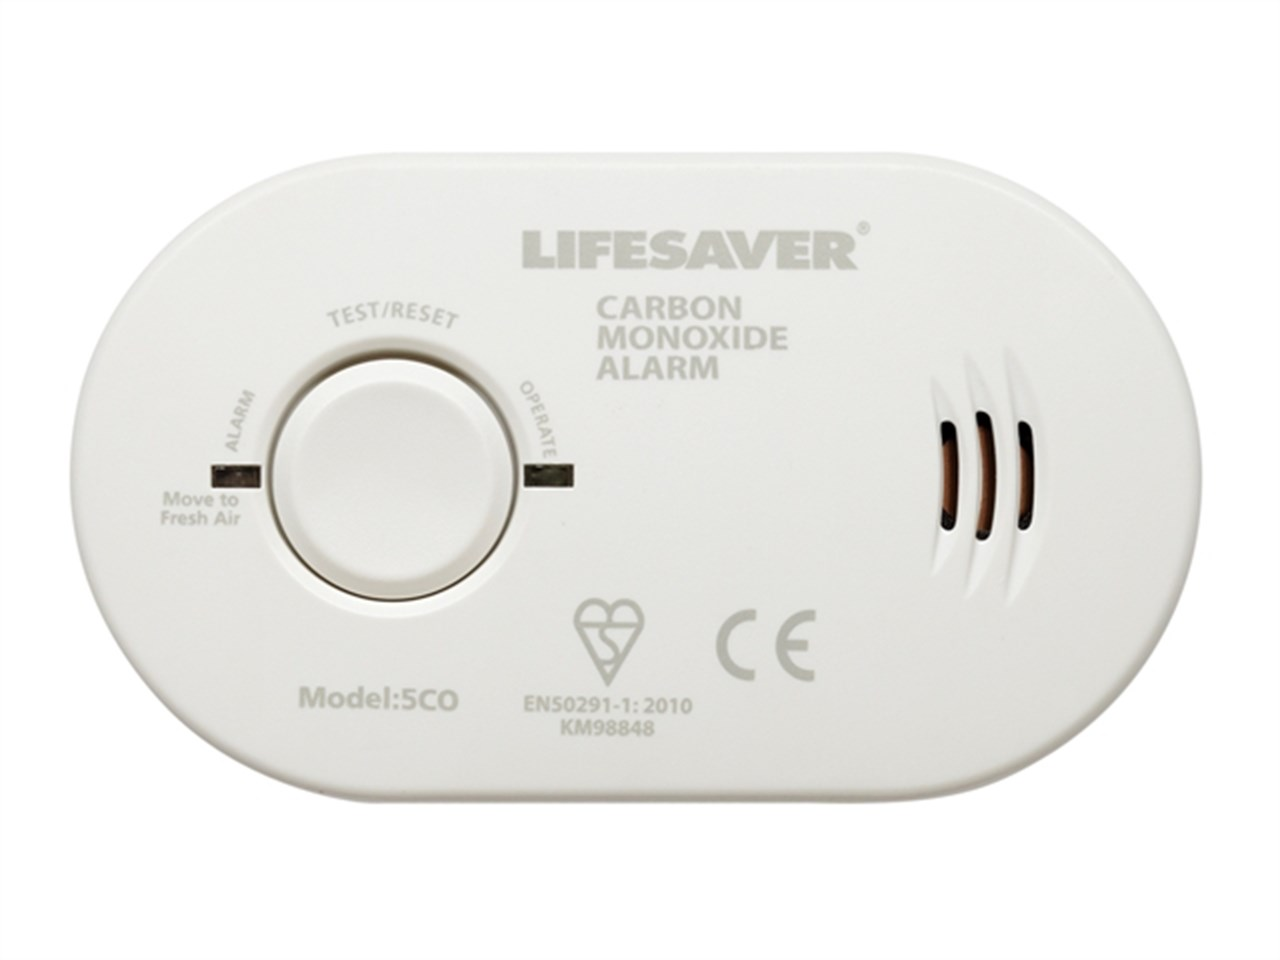 Kidde LifeSaver Battery Carbon Monoxide Detector/Alarm (w/ Hush Feature, 7-yr Warranty)